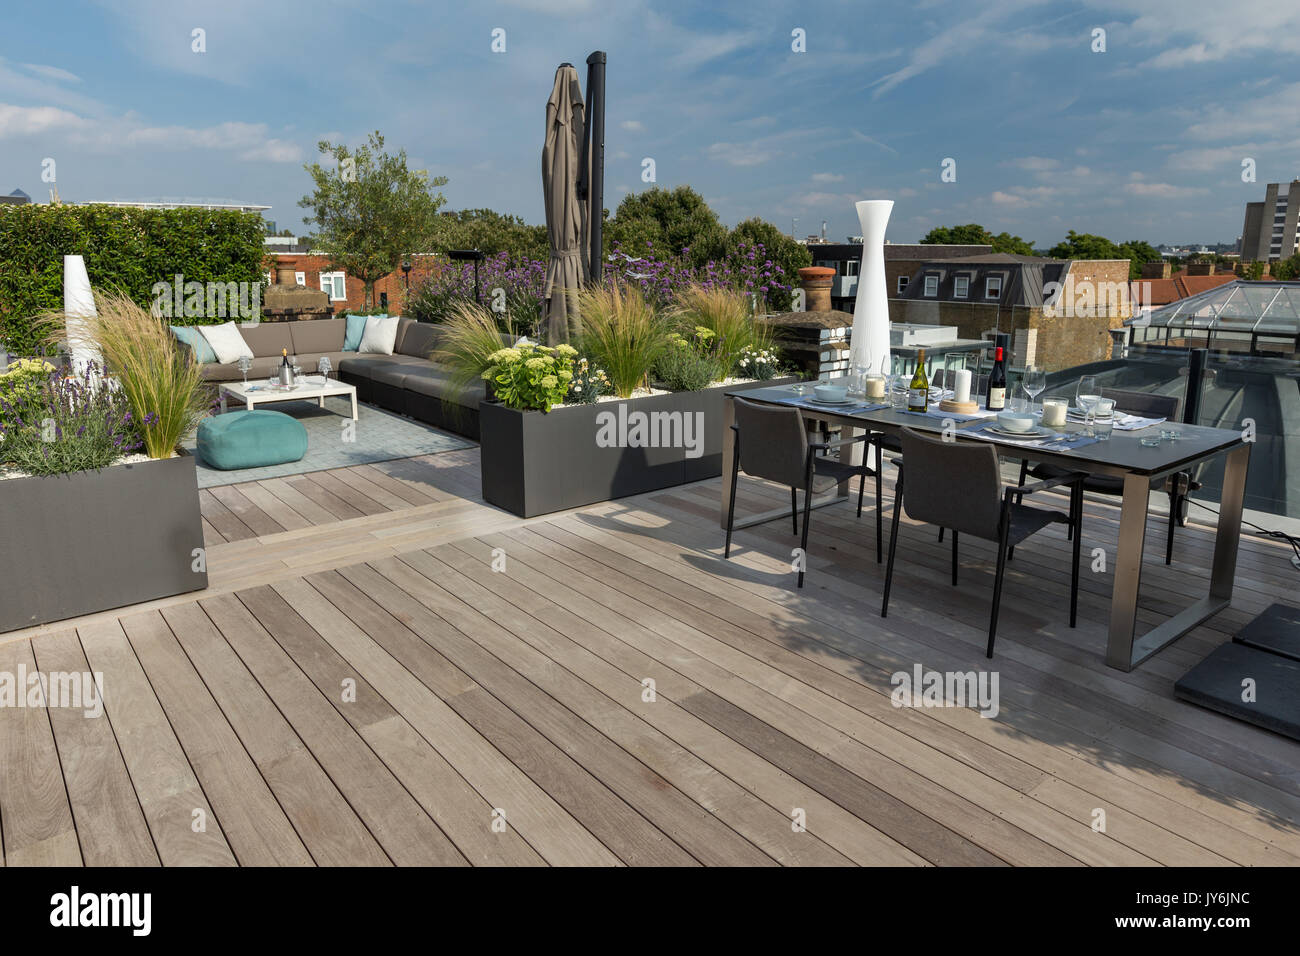 Luxurious roof terrace in london with hardwood timber decking contemporary planters with lush planting and modern outdoor furniture